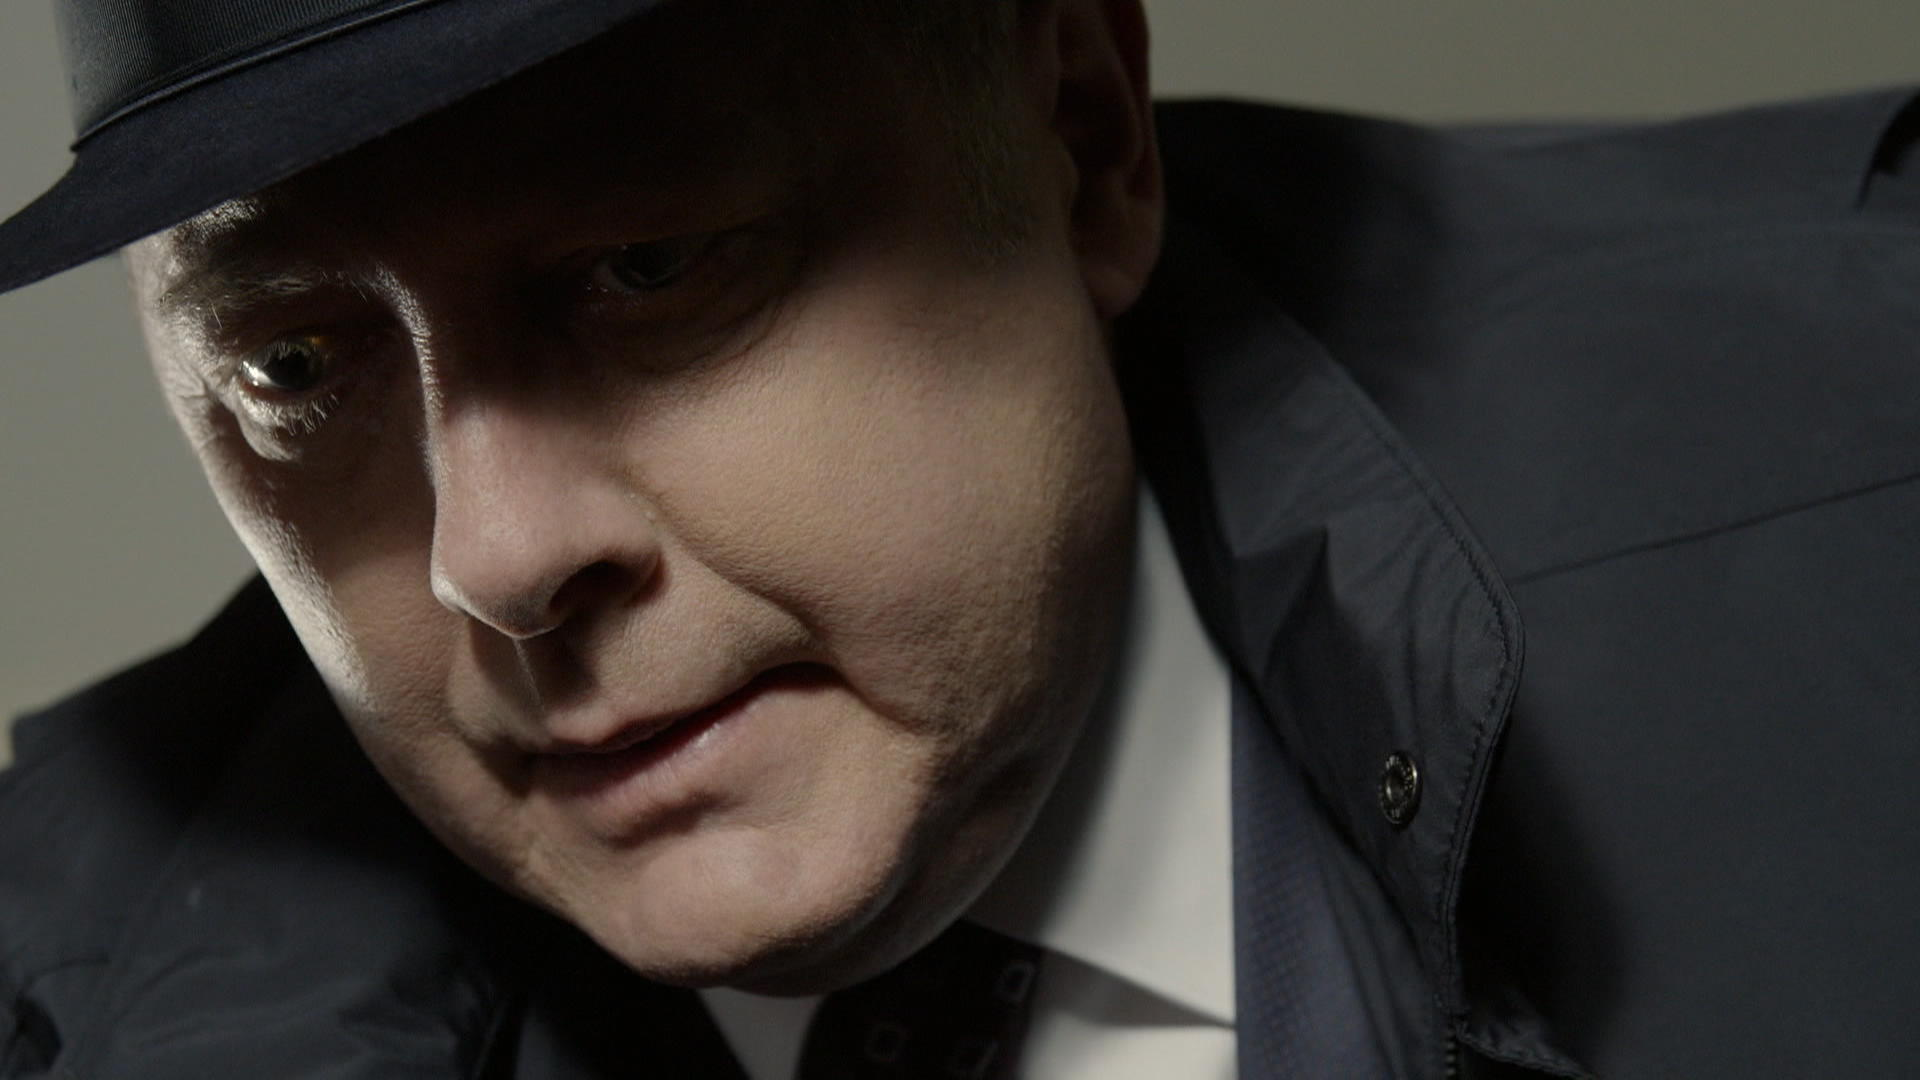 Free full episodes of The Blacklist on GlobalTV.com | Cast ...